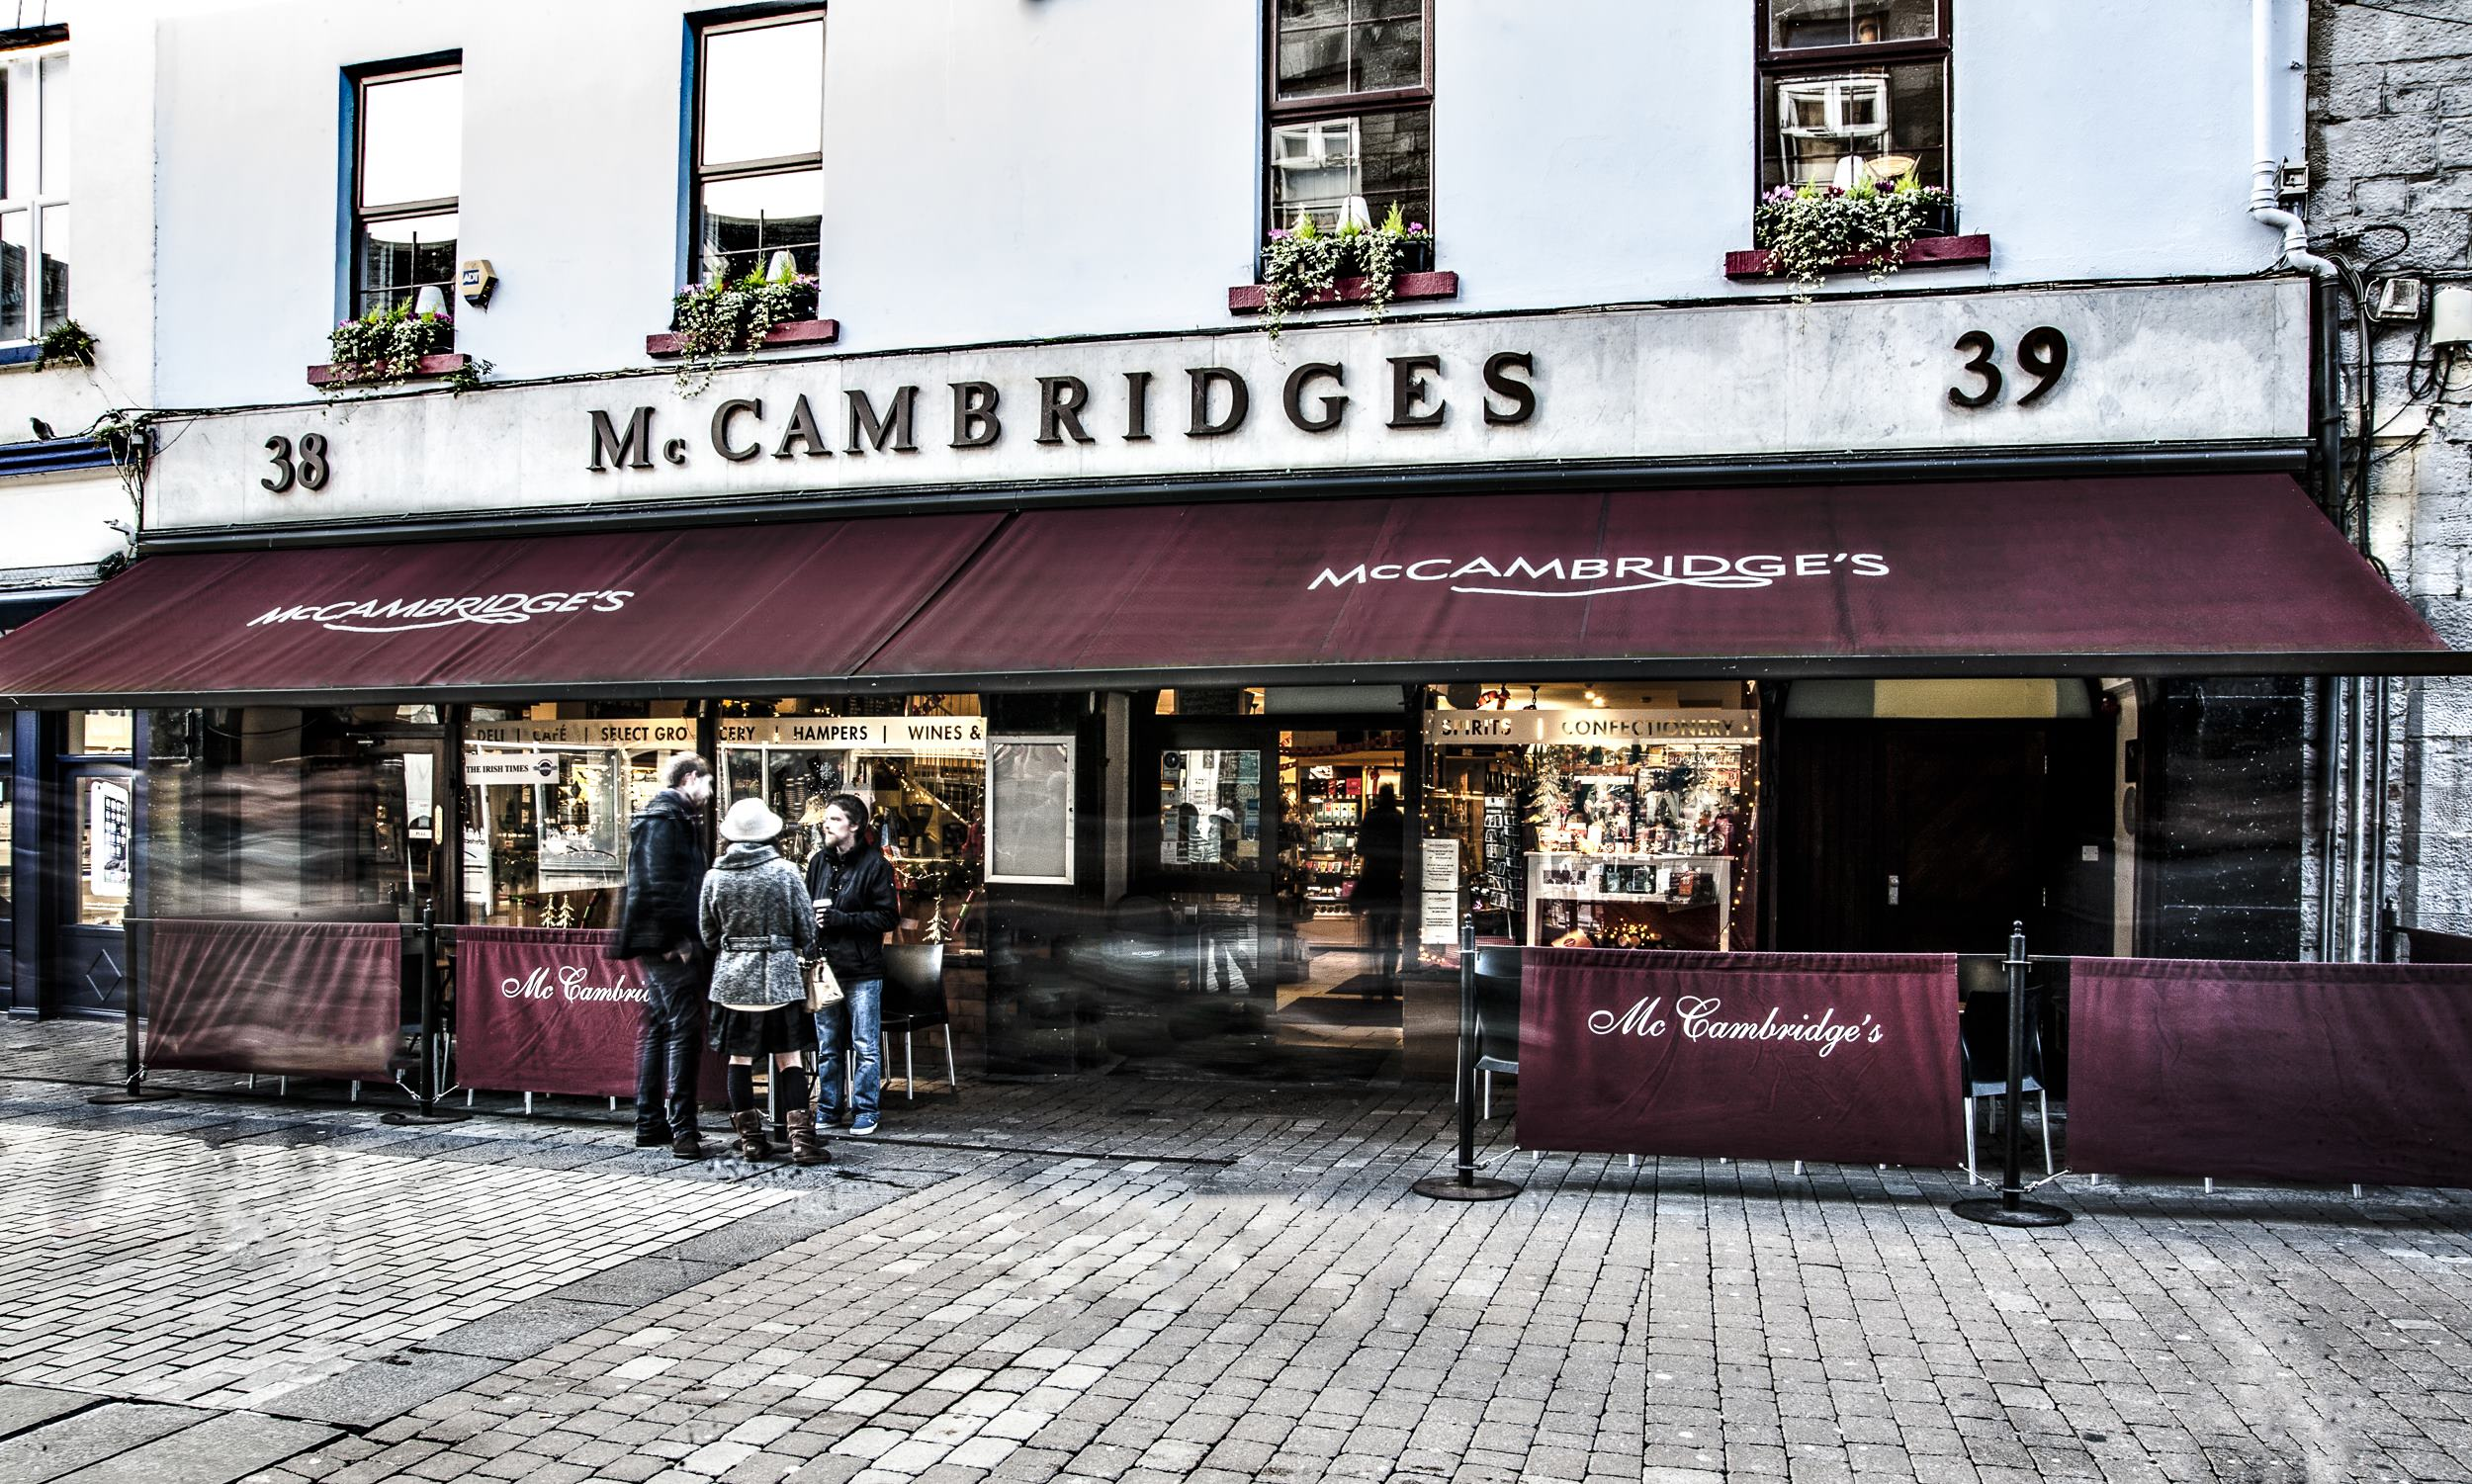 McCambridge's of Galway photo.jpg